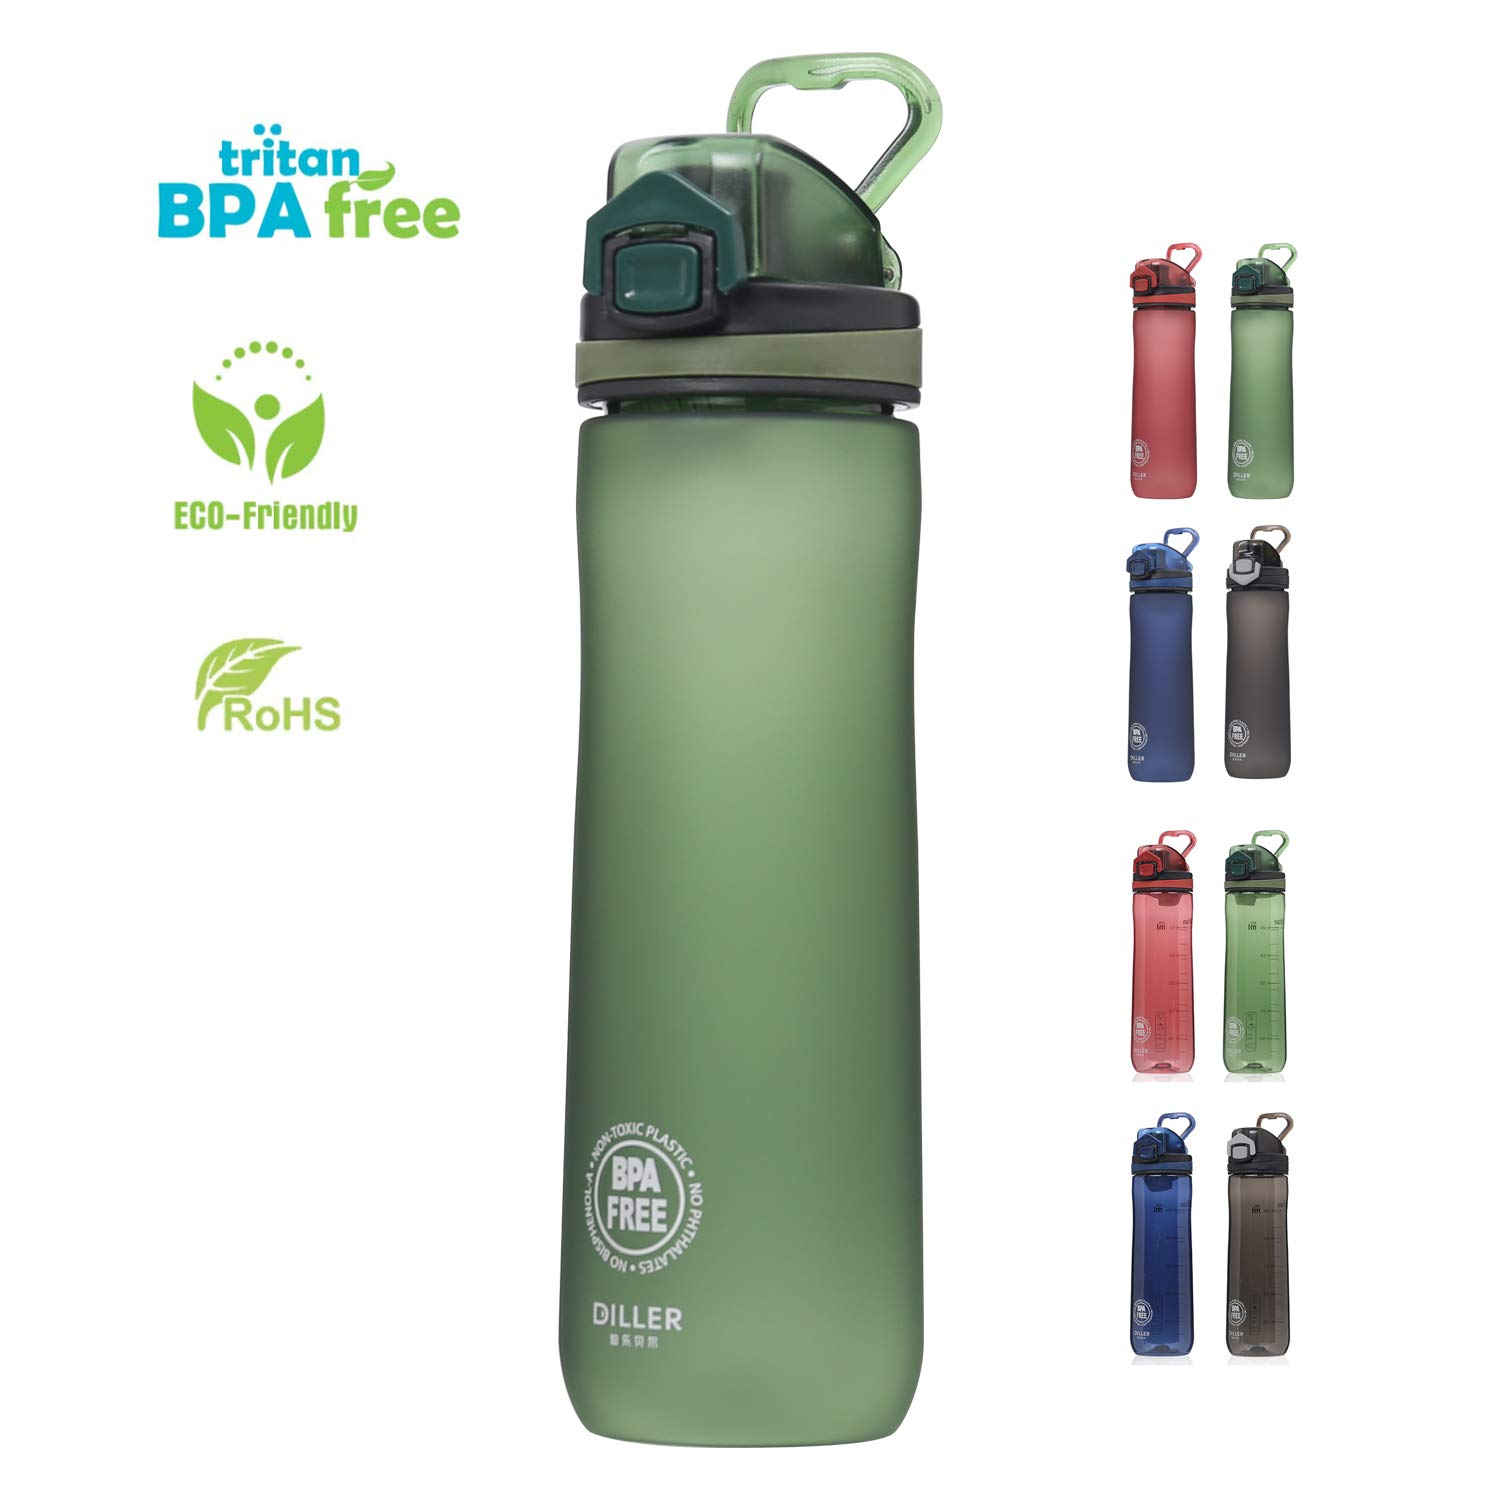 Diller 20-Ounce Sports Water Bottle for Kids with Locking Flip-Flop Lid US Tritan BPA-Free Reusable Travel Mug Fitness for Camping Training Bicycle Hiking Gym Outdoor